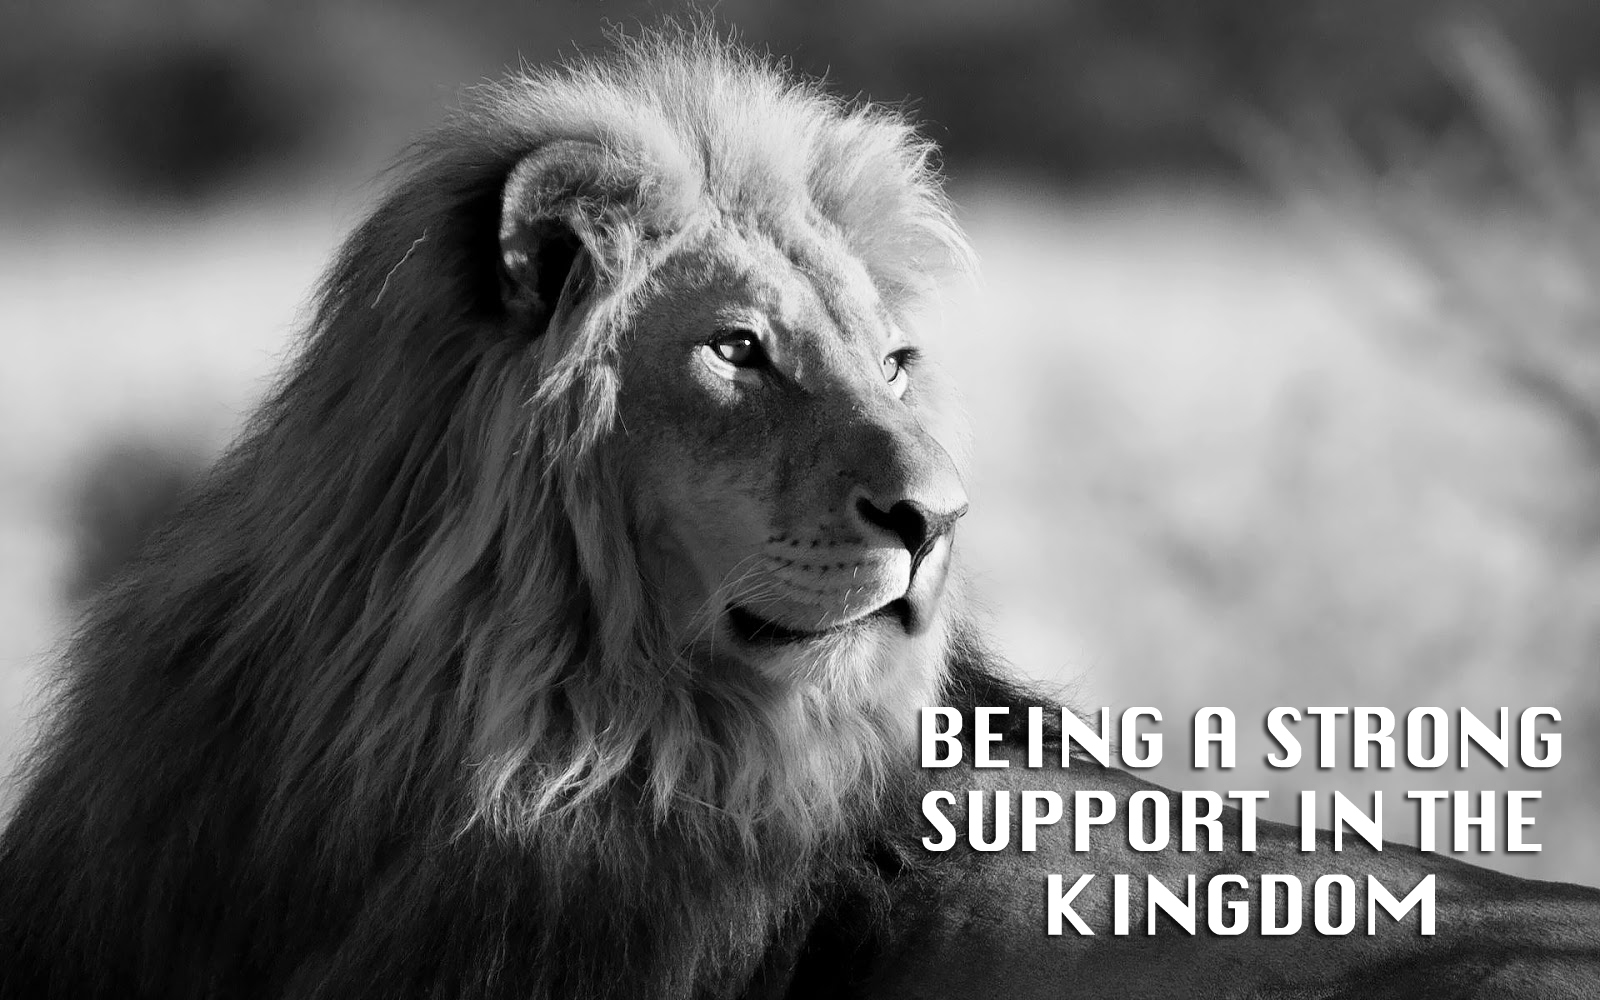 Being A Strong Support in the Kingdom